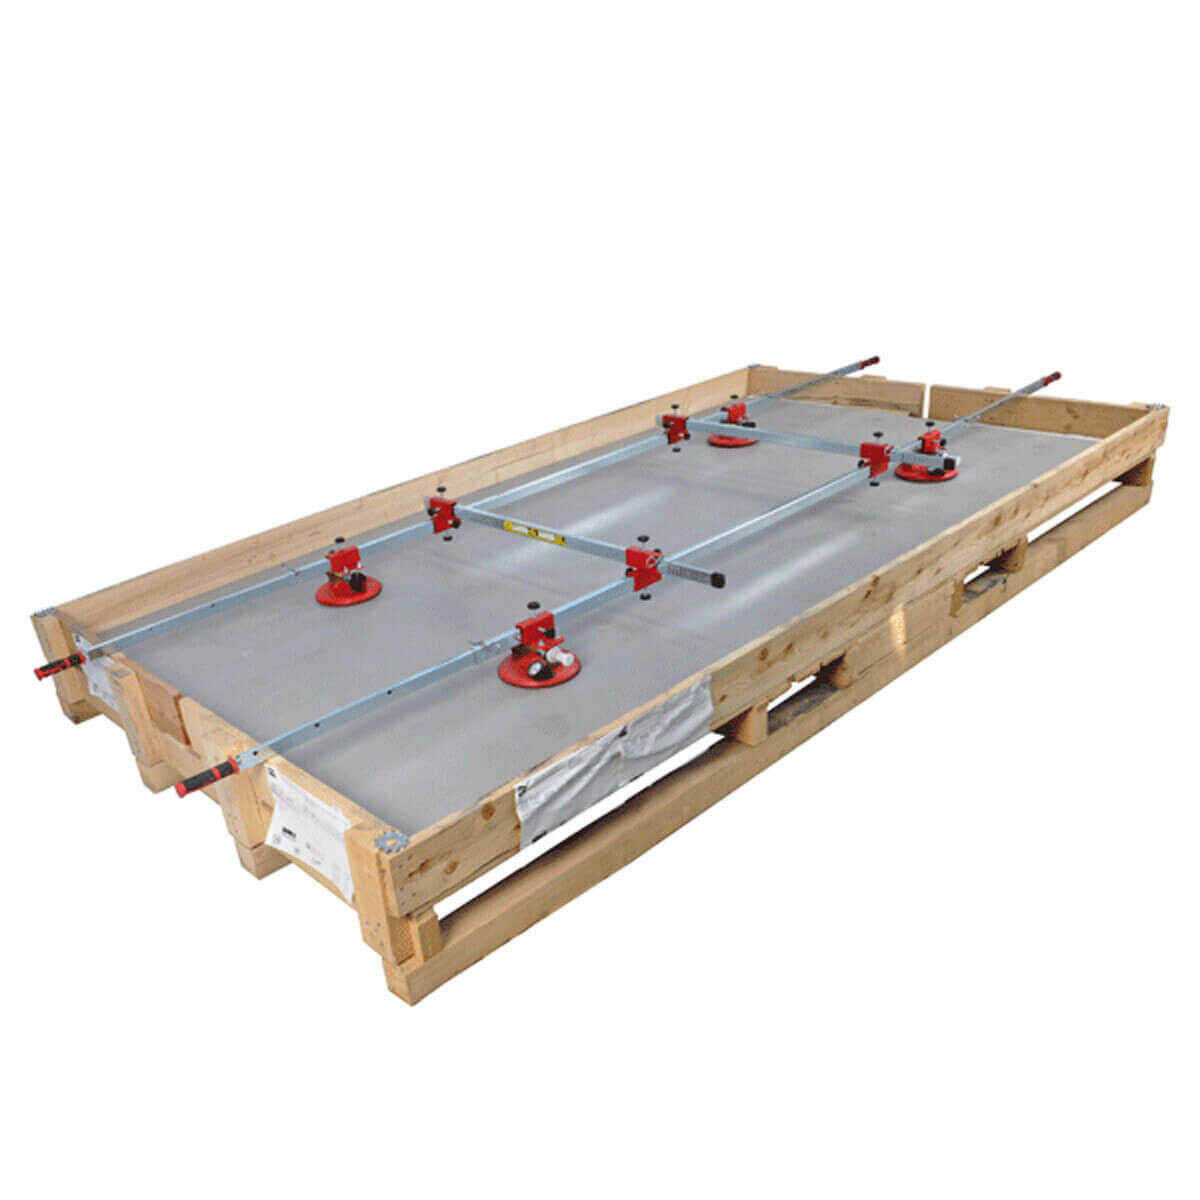 montolit The overall design and dimensions of this tool allow for removal of slabs from the packaging crates that they are shipped in, Made of galvanized steel to resist corrosion